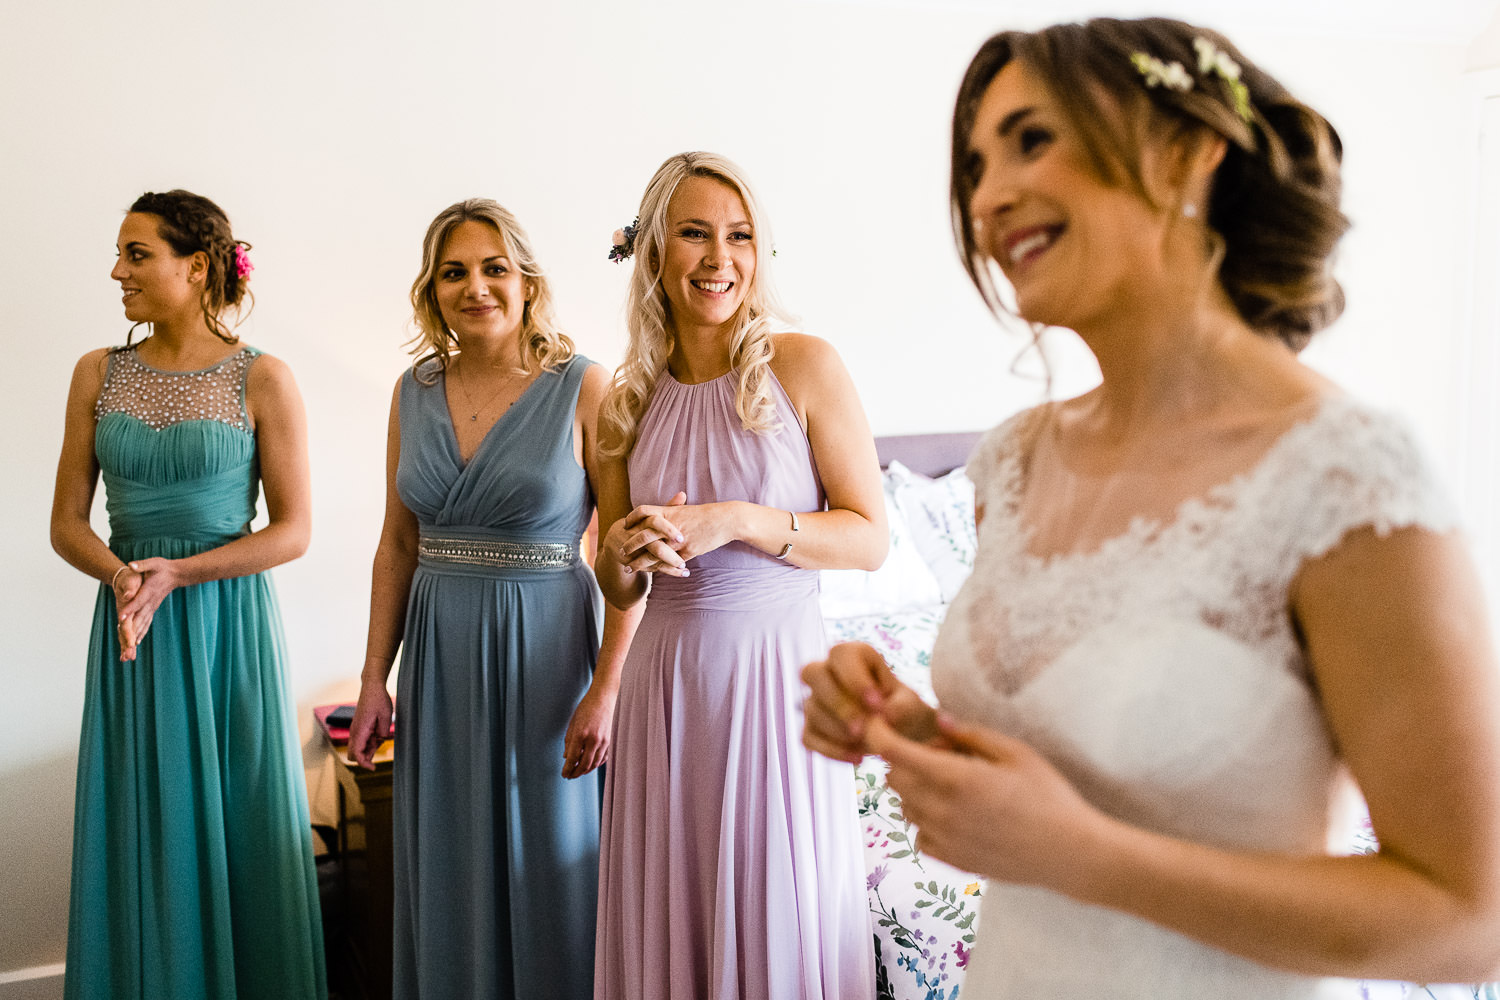 brides dress reveal to bridesmaids